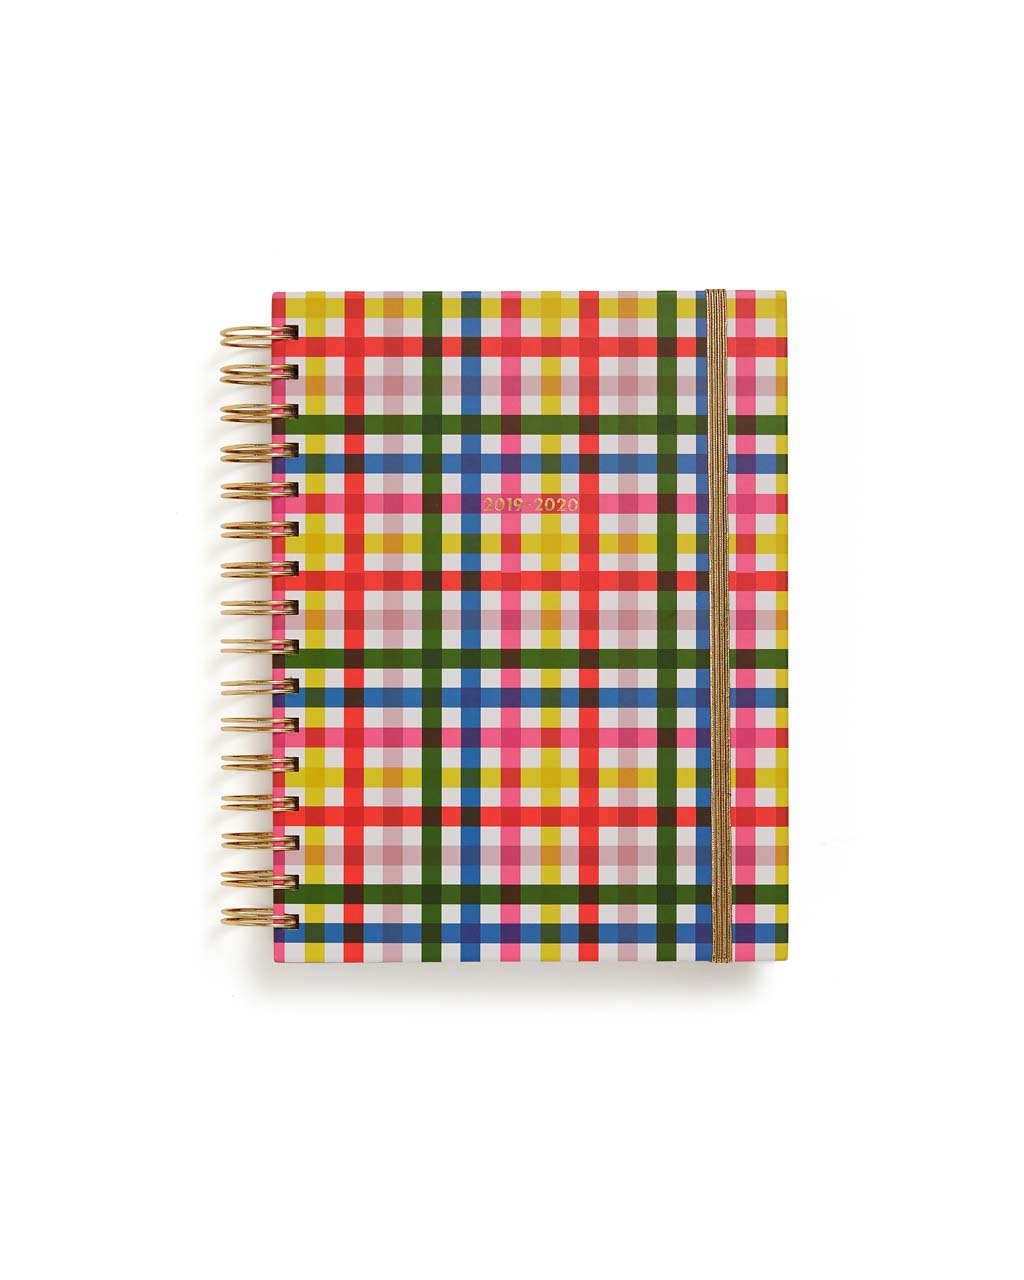 This Medium 17-Month Annual Planner comes in a rainbow-plaid design.